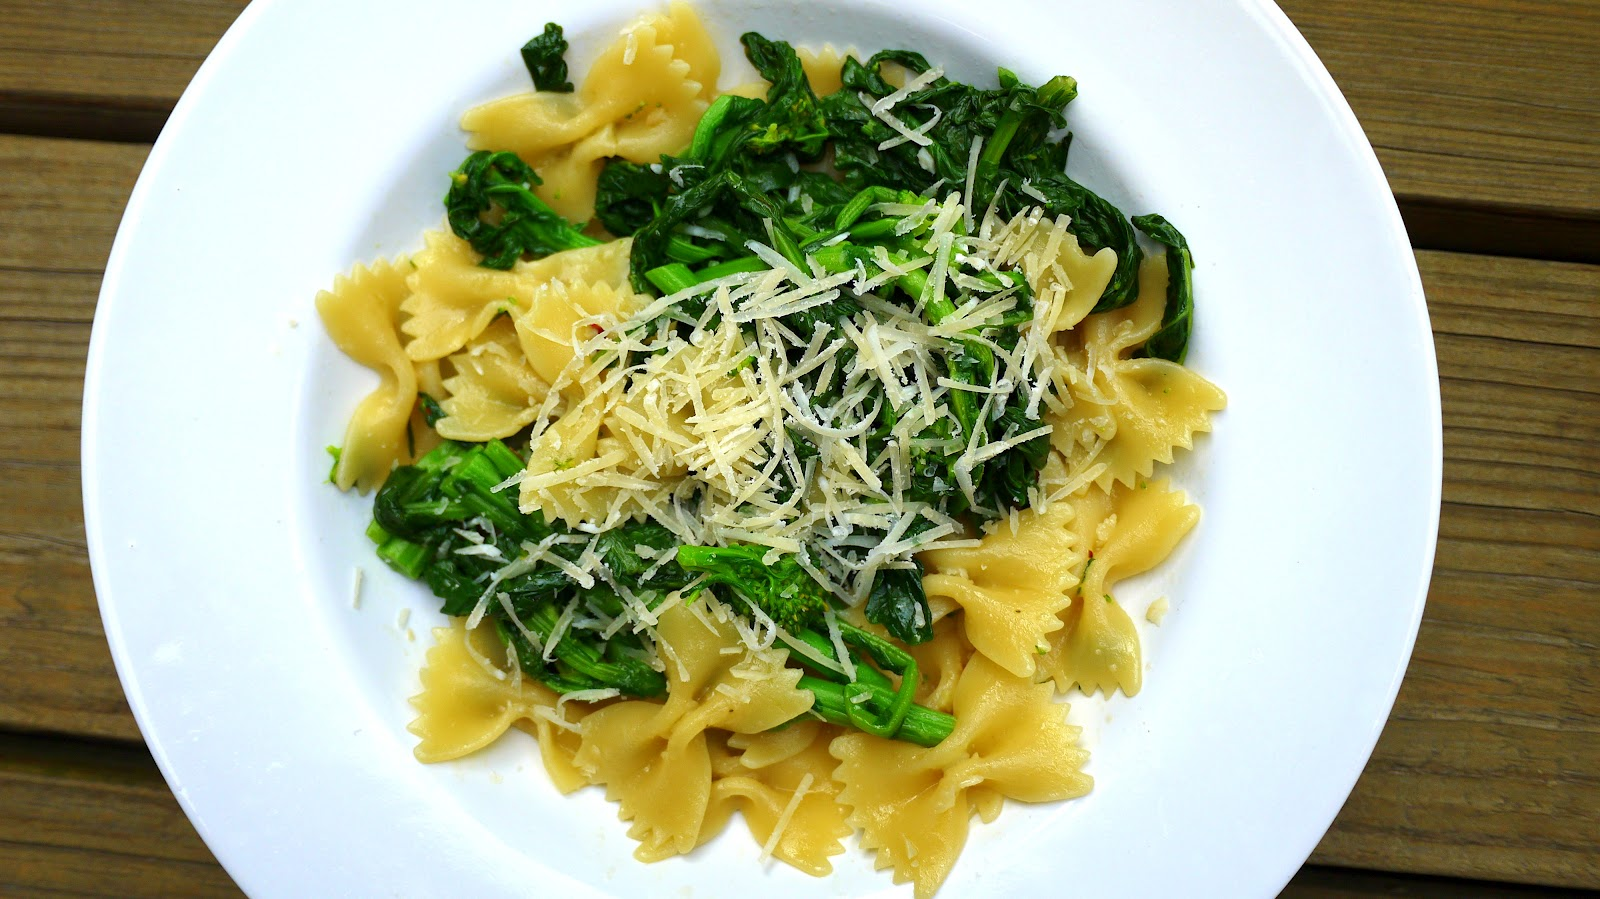 Fresh Local and Best: Garlic Broccoli Rabe Pasta Quickest Meal Ever